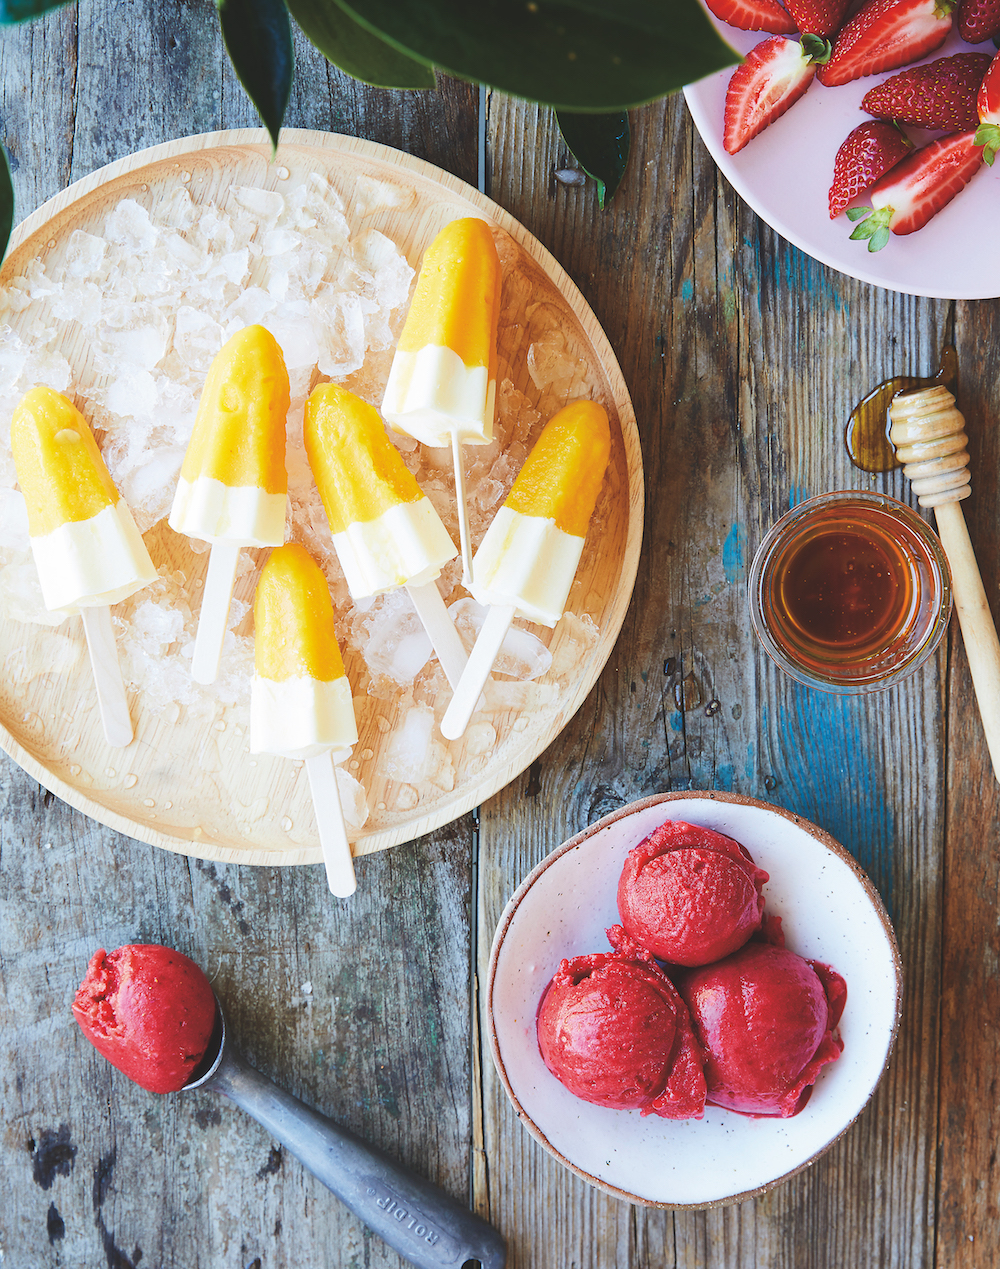 Mango Ice-Cream Bars image 2 SML.jpg